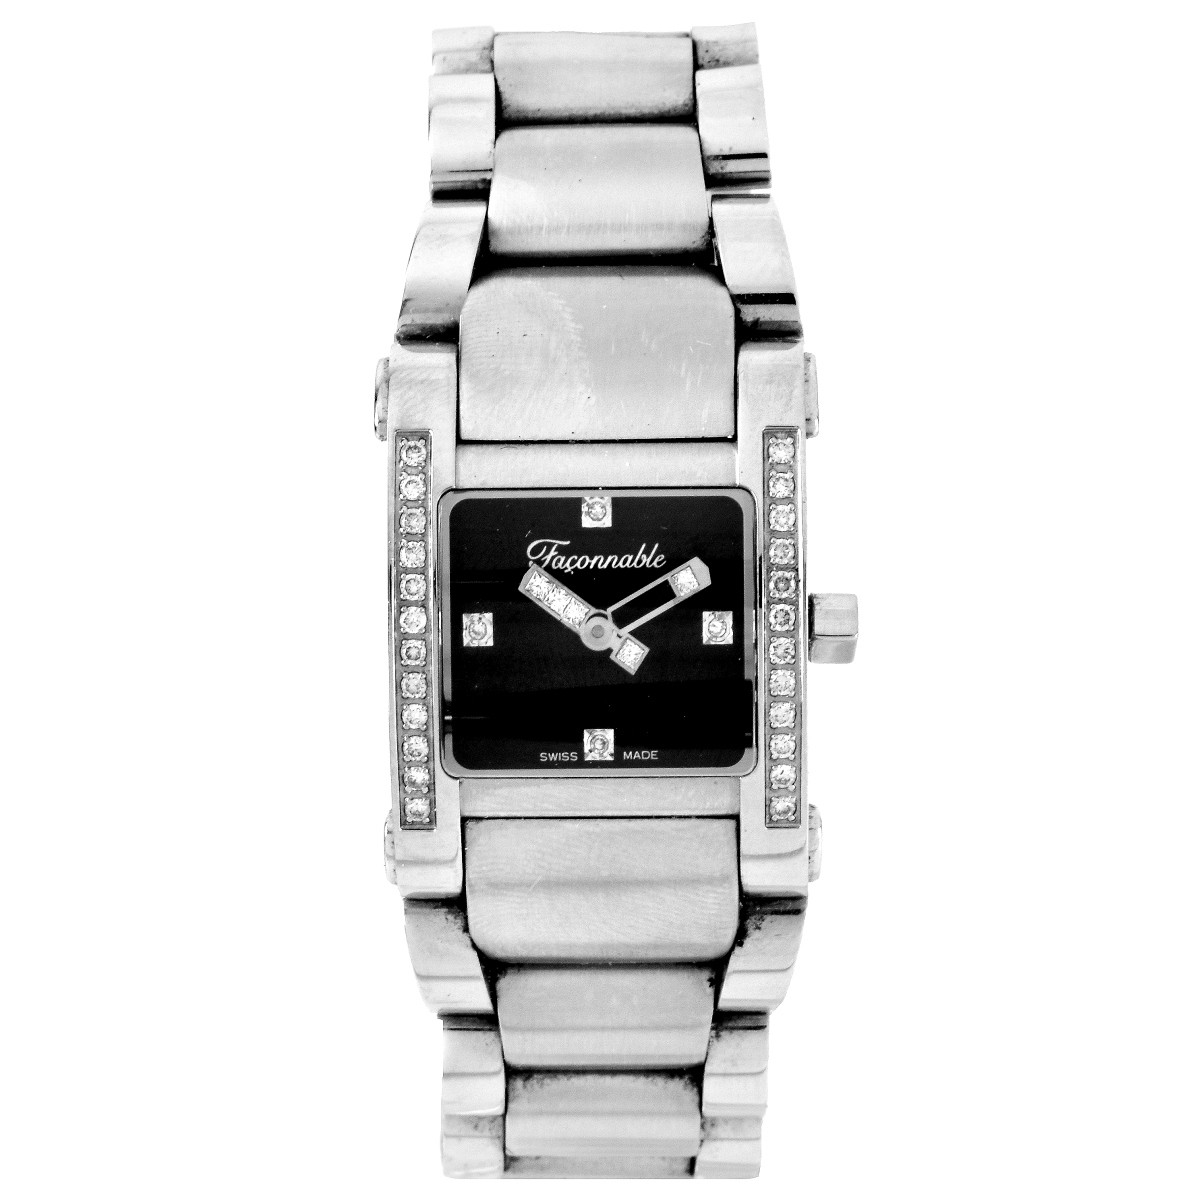 Men's Faconnable Watch